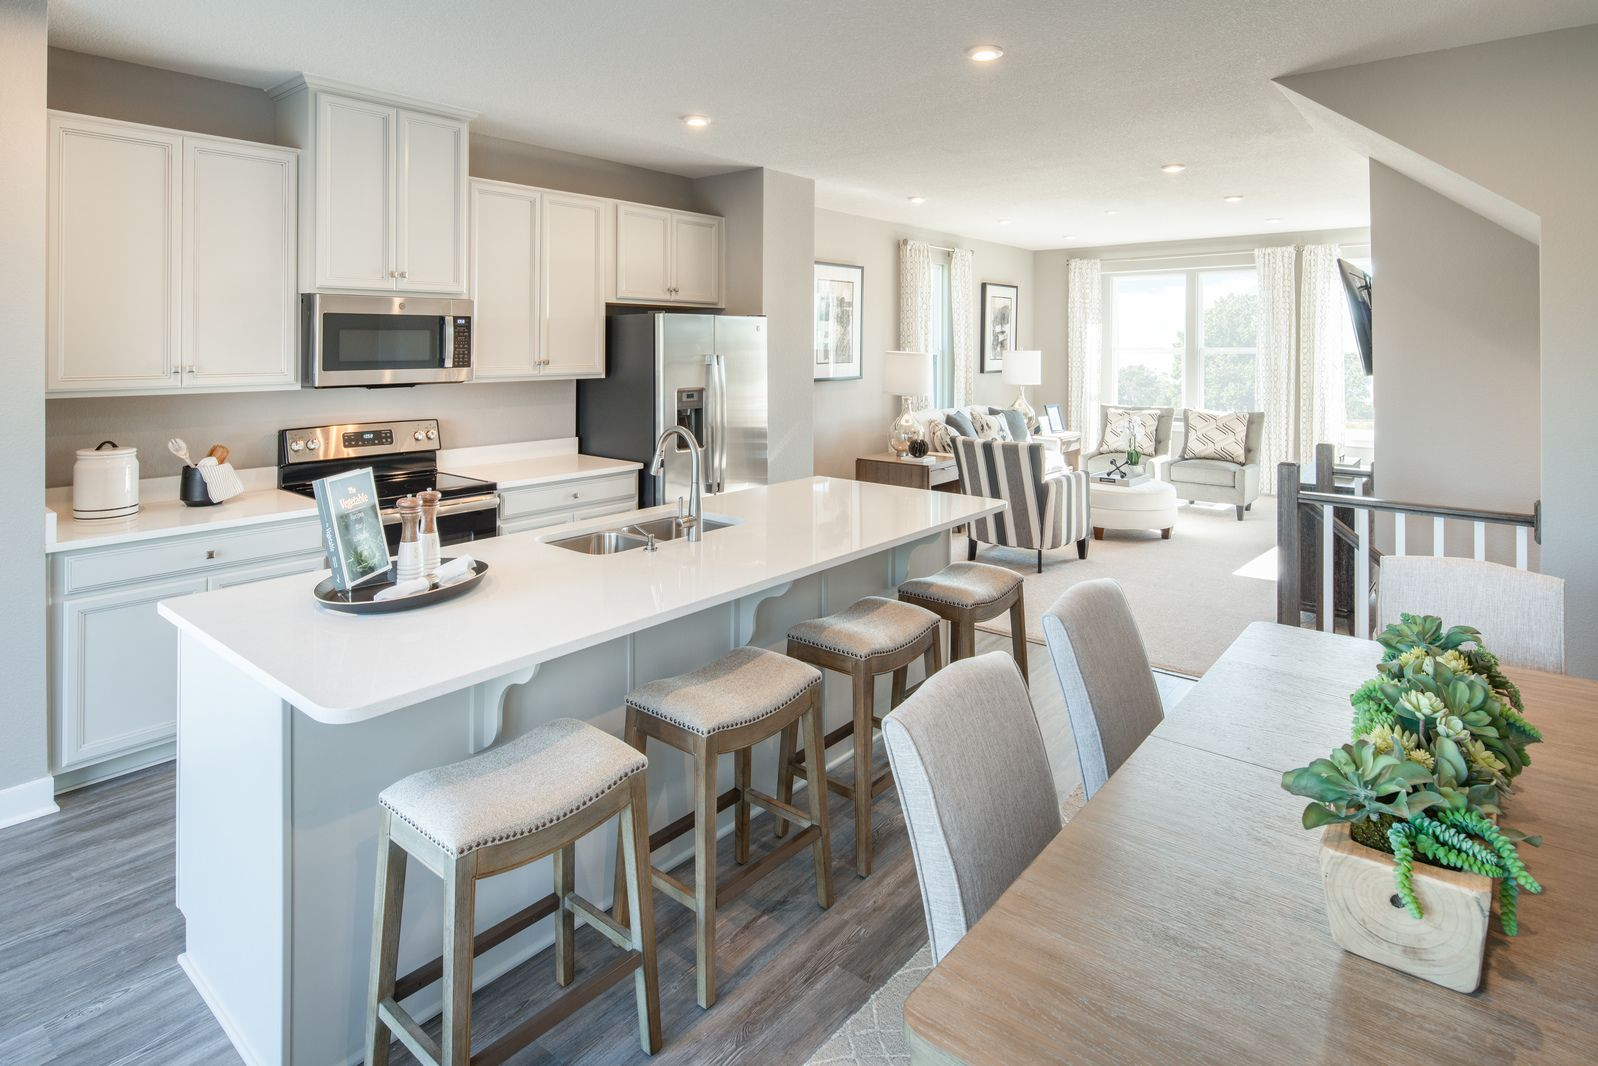 Home ready for a November move-in.:Schedule your tour today! Last opportunity to own in this amazing community. Hurry, won't last!